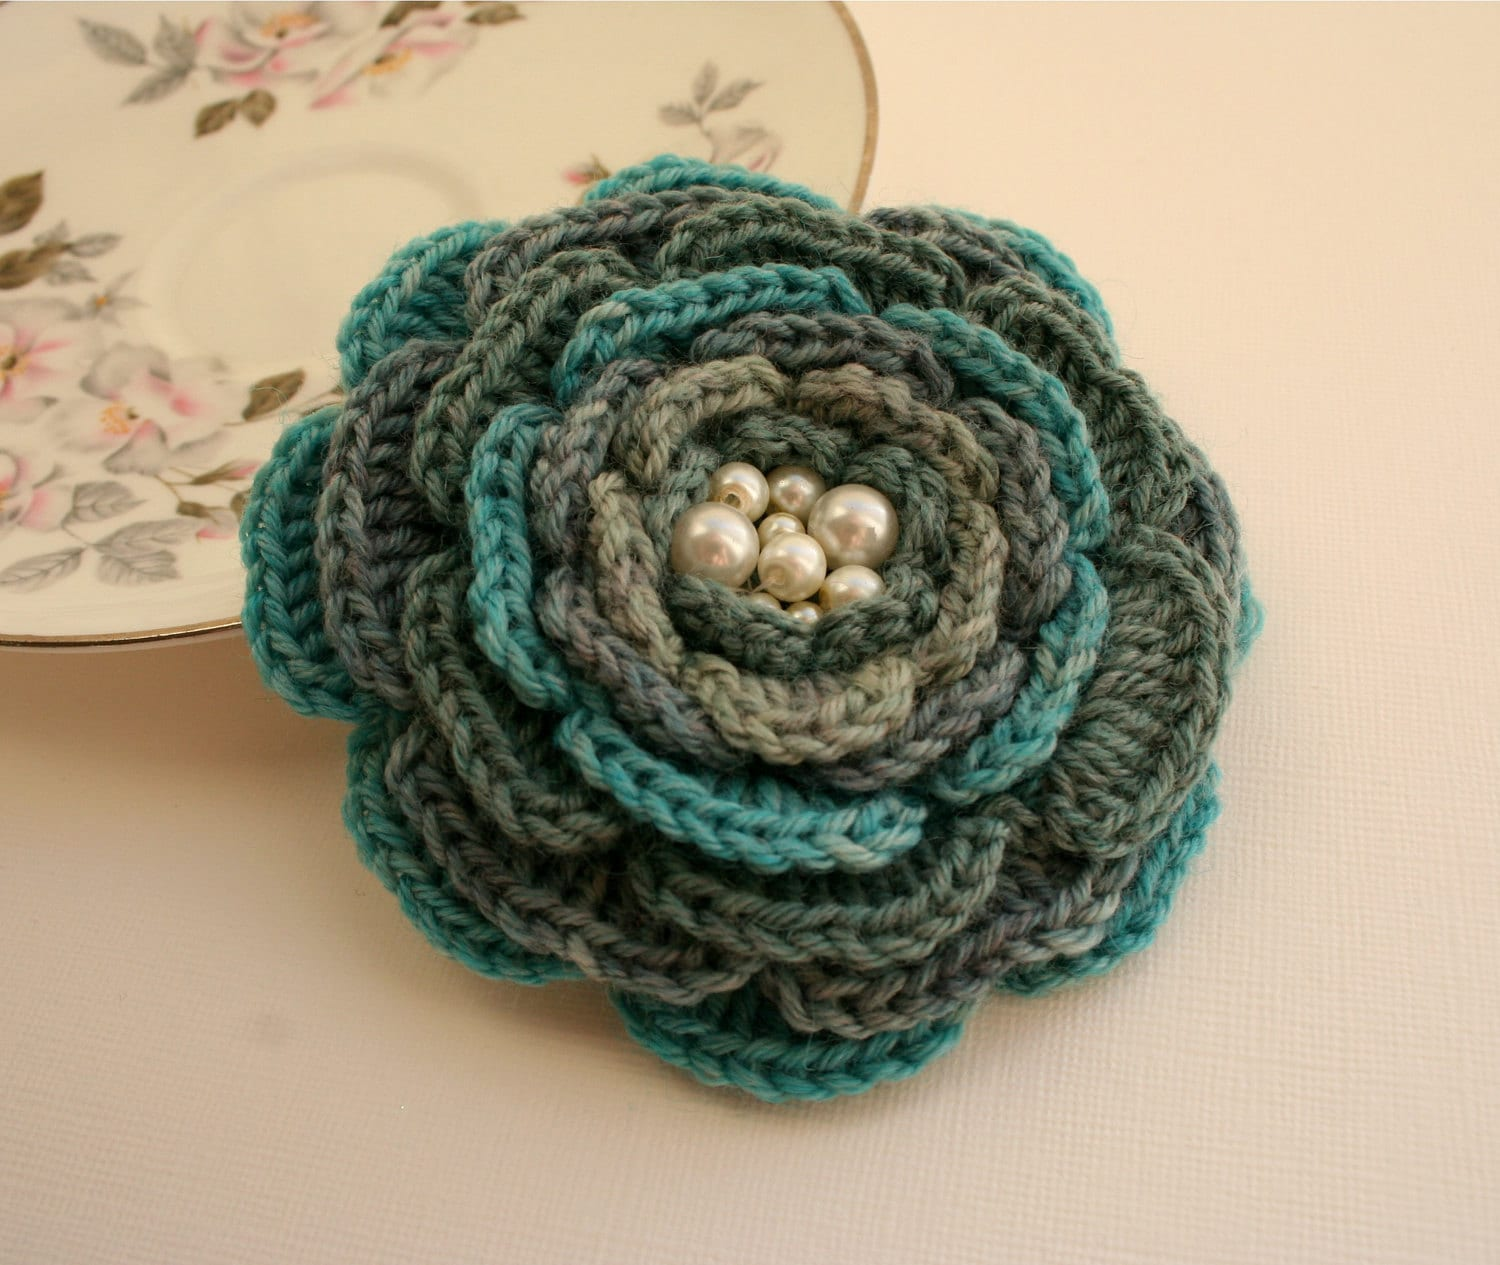 Crochet Flower Brooch Pattern Free : Unavailable Listing on Etsy